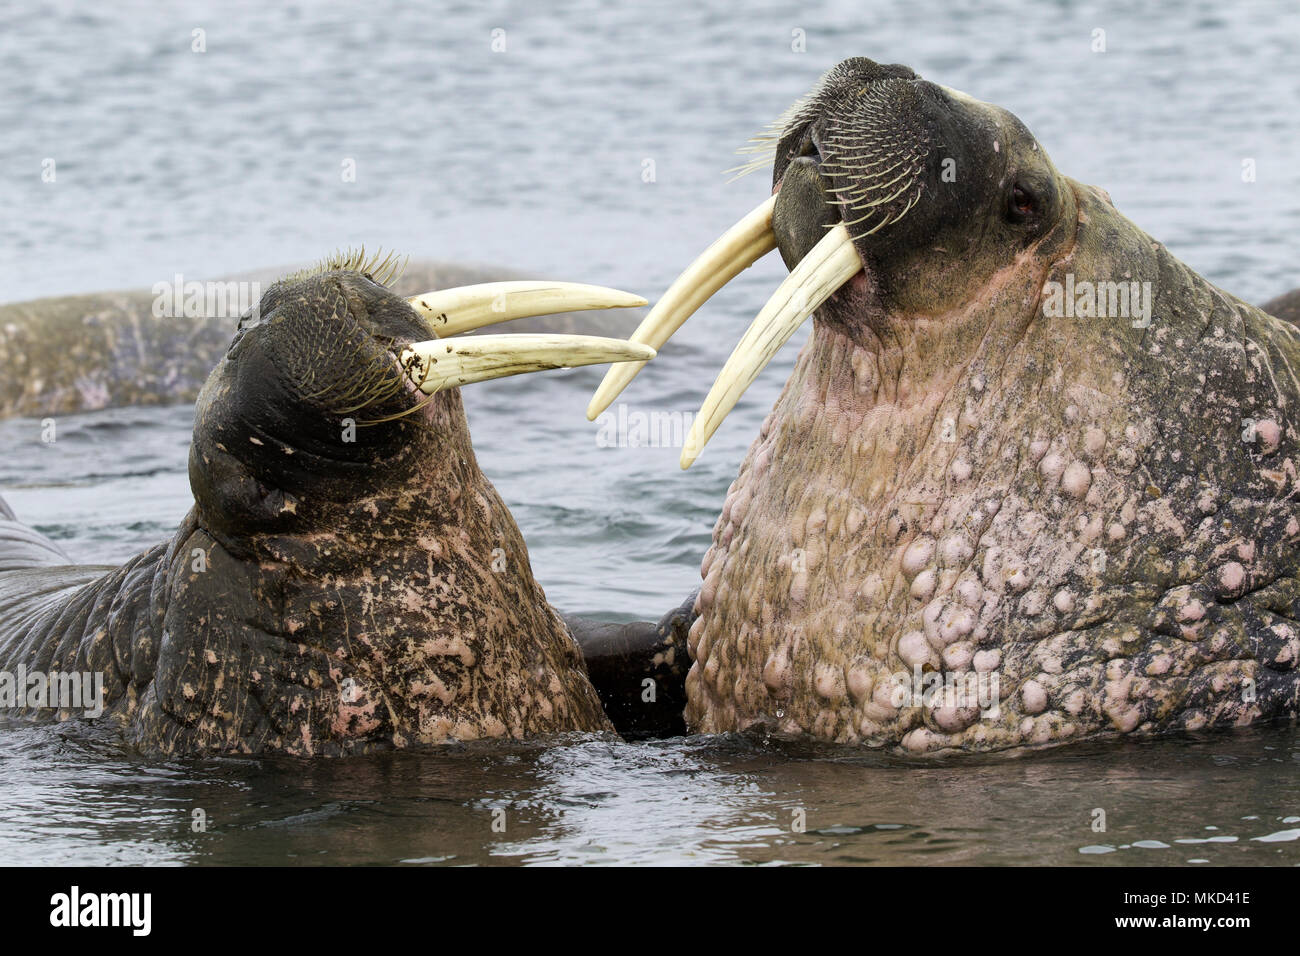 Pair of Atlantic walrus (Odobenus rosmarus), one adult and one younger playing with their tusks, Vulnerable (IUCN), Spitsbergen, Svalbard, Norwegian archipelago, Norway, Arctic Ocean Stock Photo